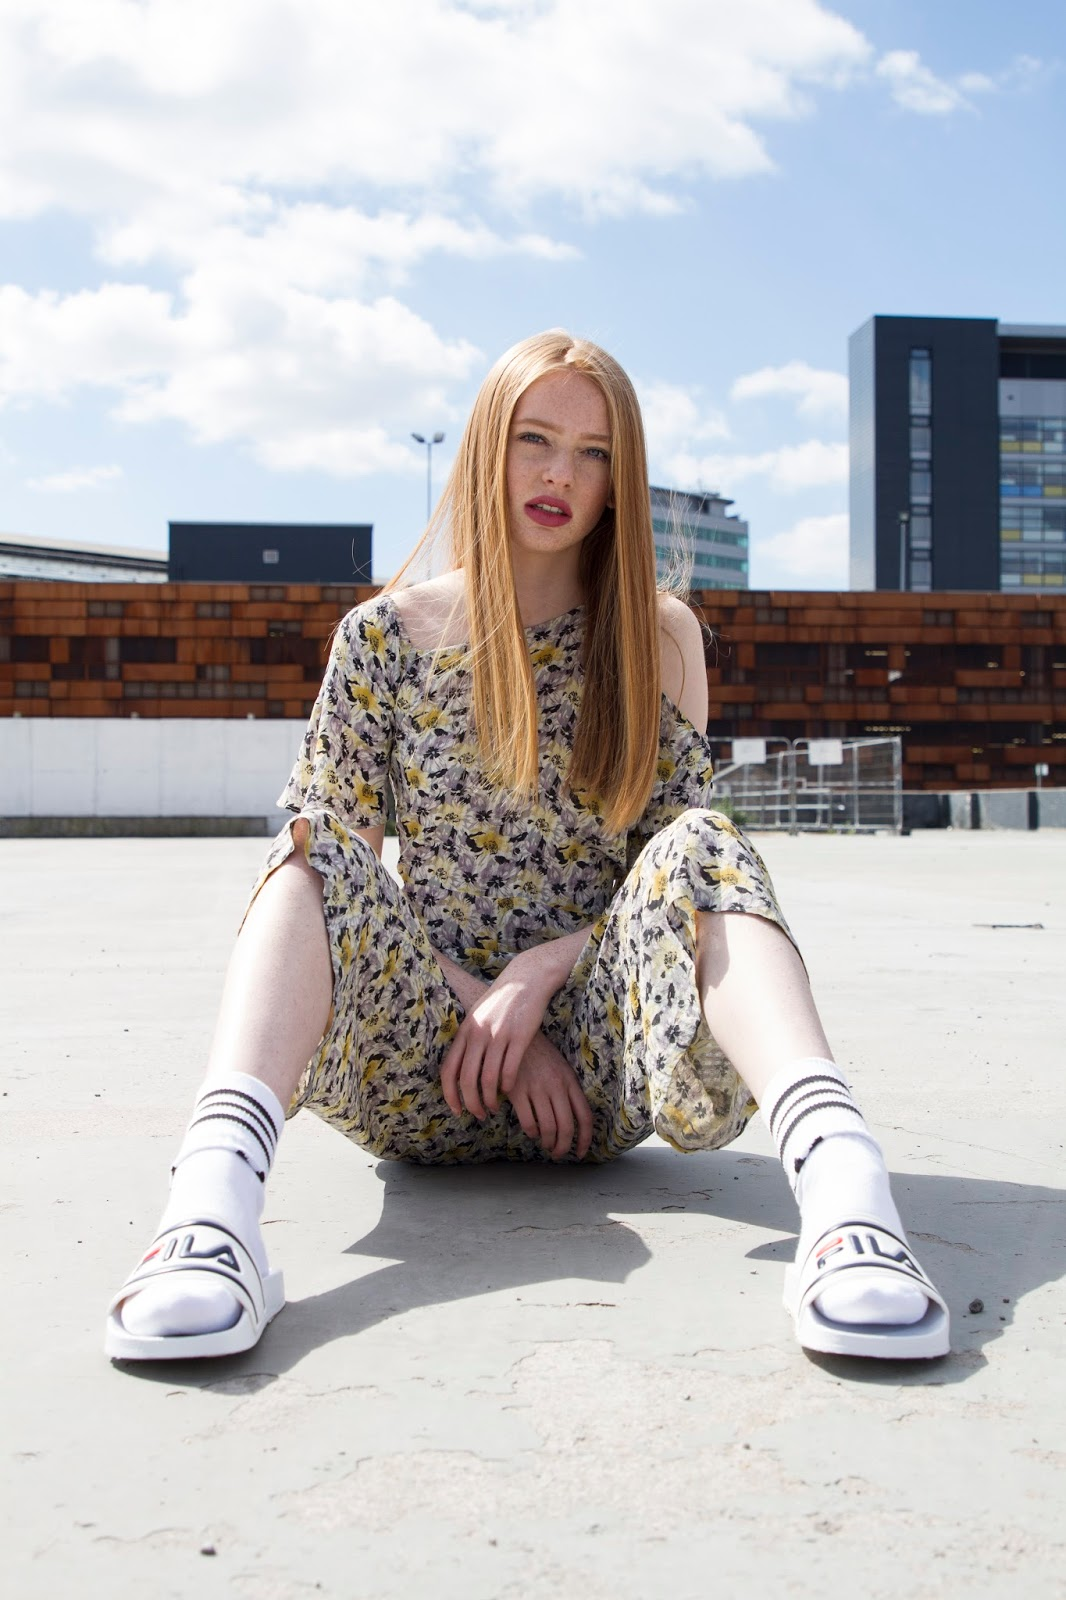 Karina So Ses Reveries Manchester Fashion Stylist London Editorial Commercial Leeds